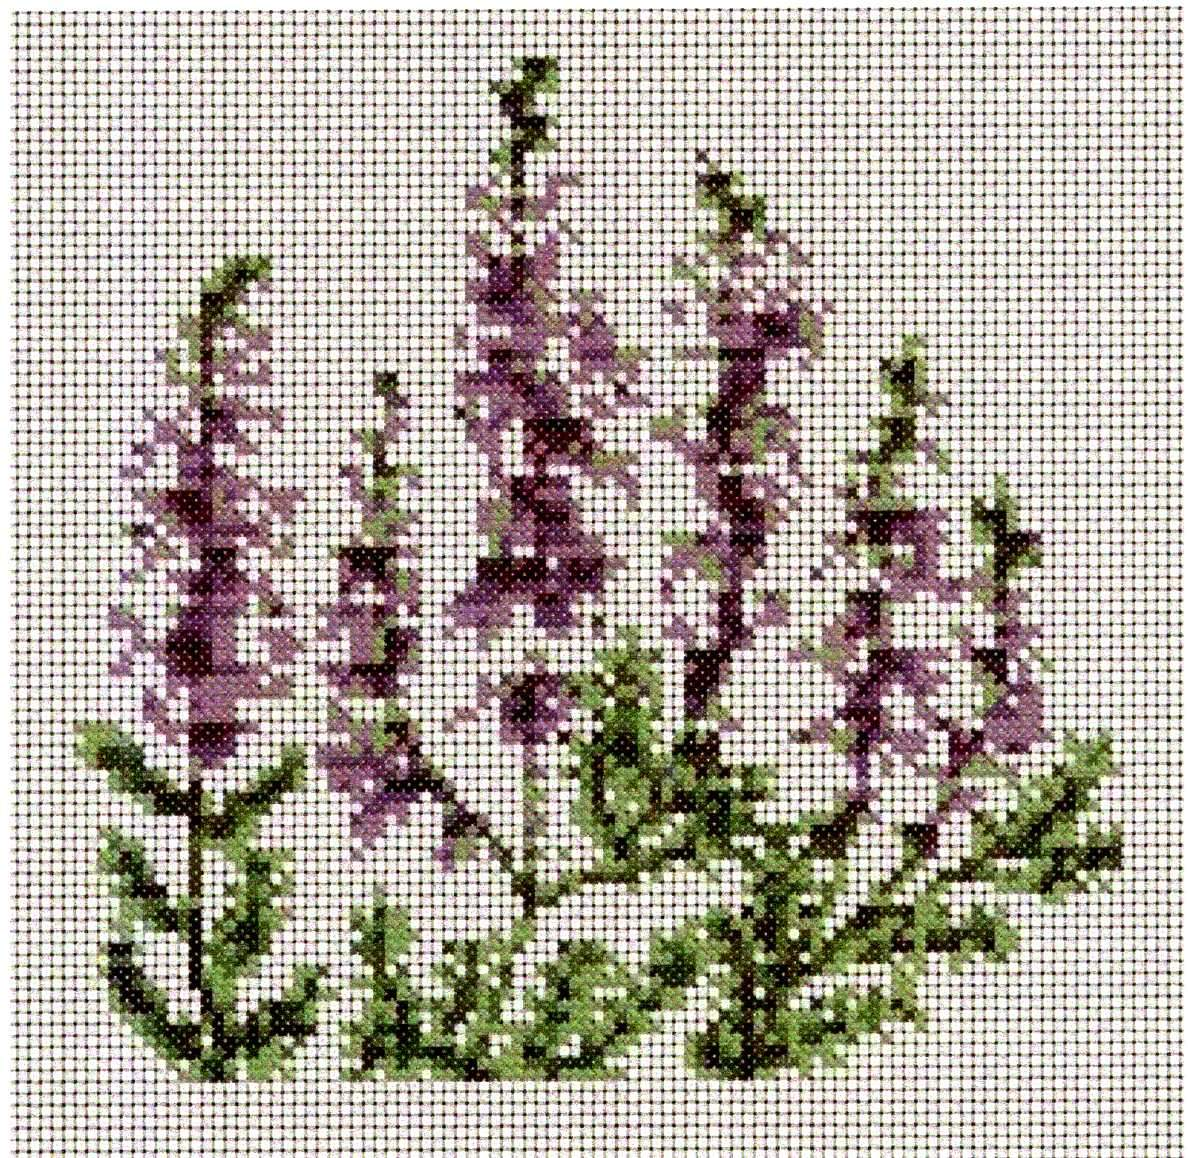 Celtic Obsessions Scottish Heather Cross Stitch Pattern Stitch Patterns Cross Stitch Cross Stitch Patterns